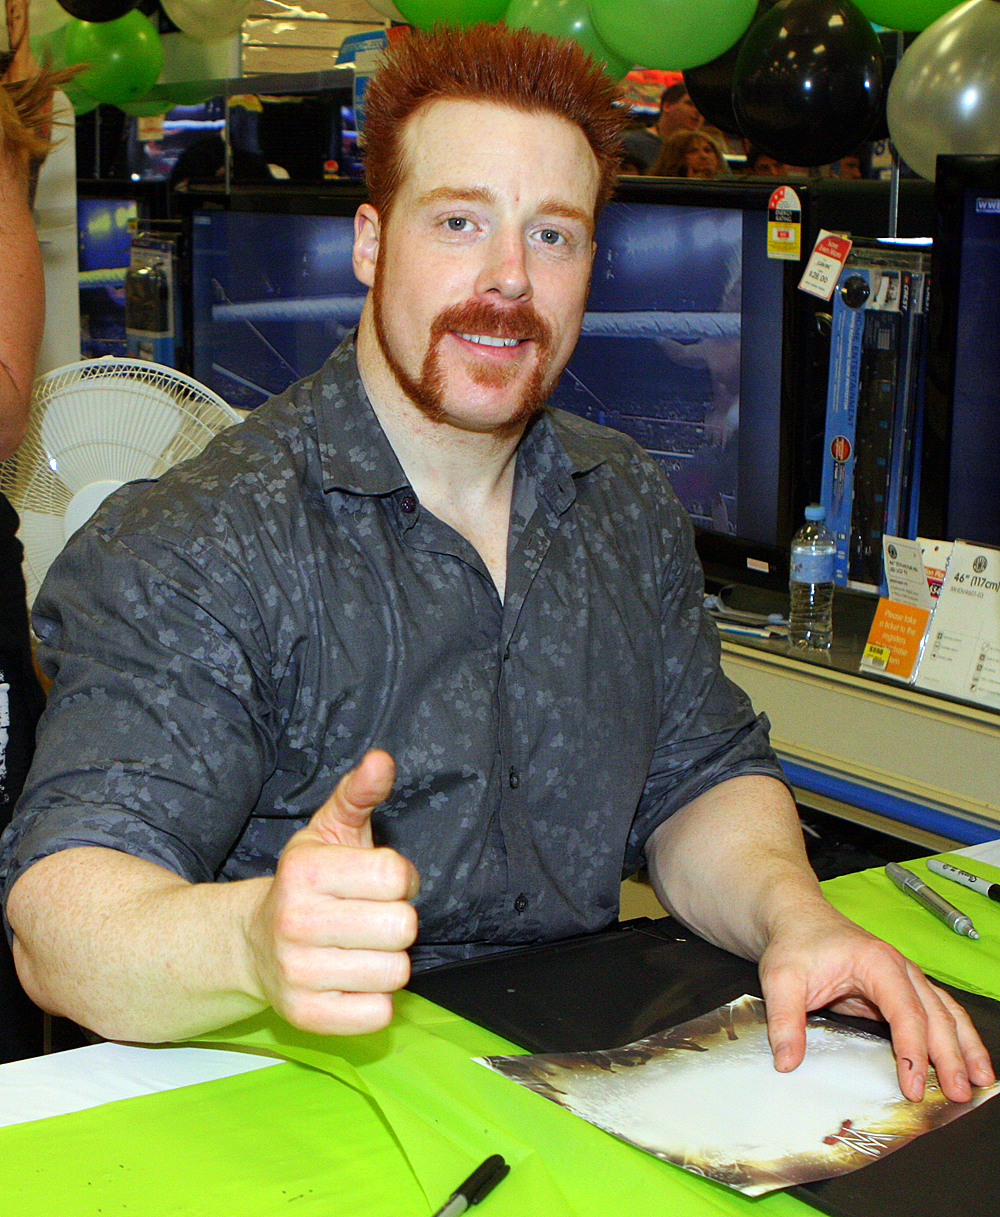 The 39-year old son of father Martin Farrelly and mother(?), 198 cm tall Sheamus in 2017 photo